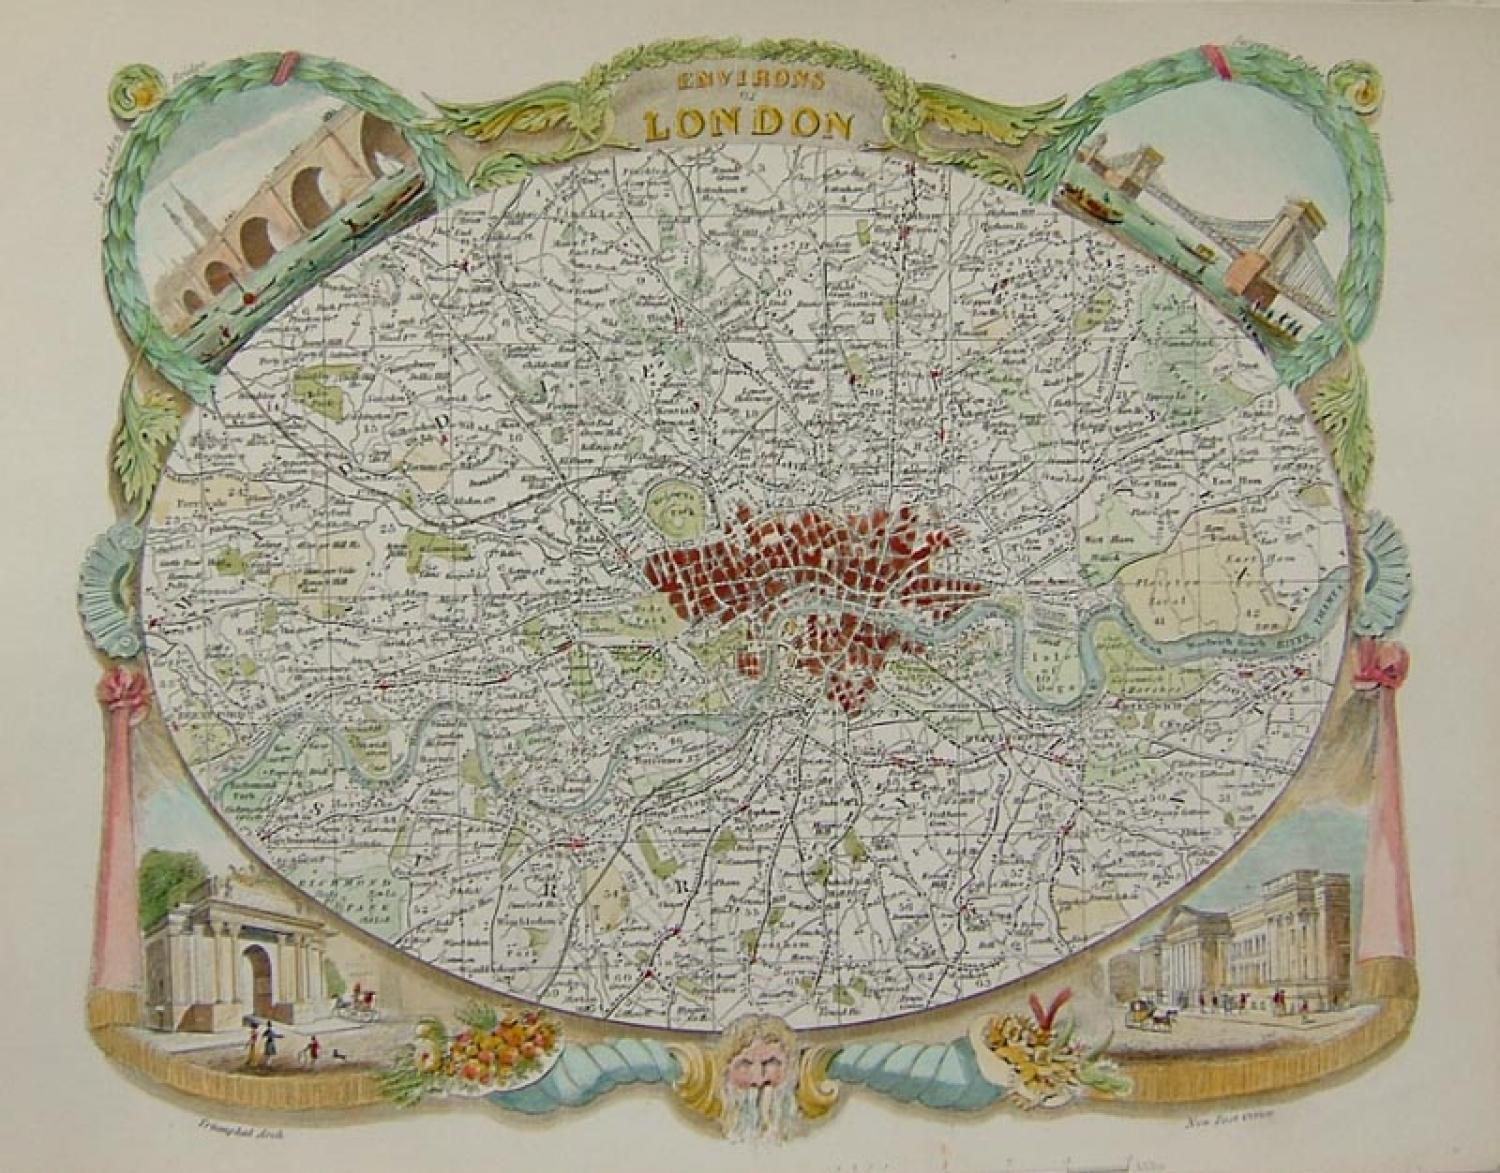 SOLD Environs of London